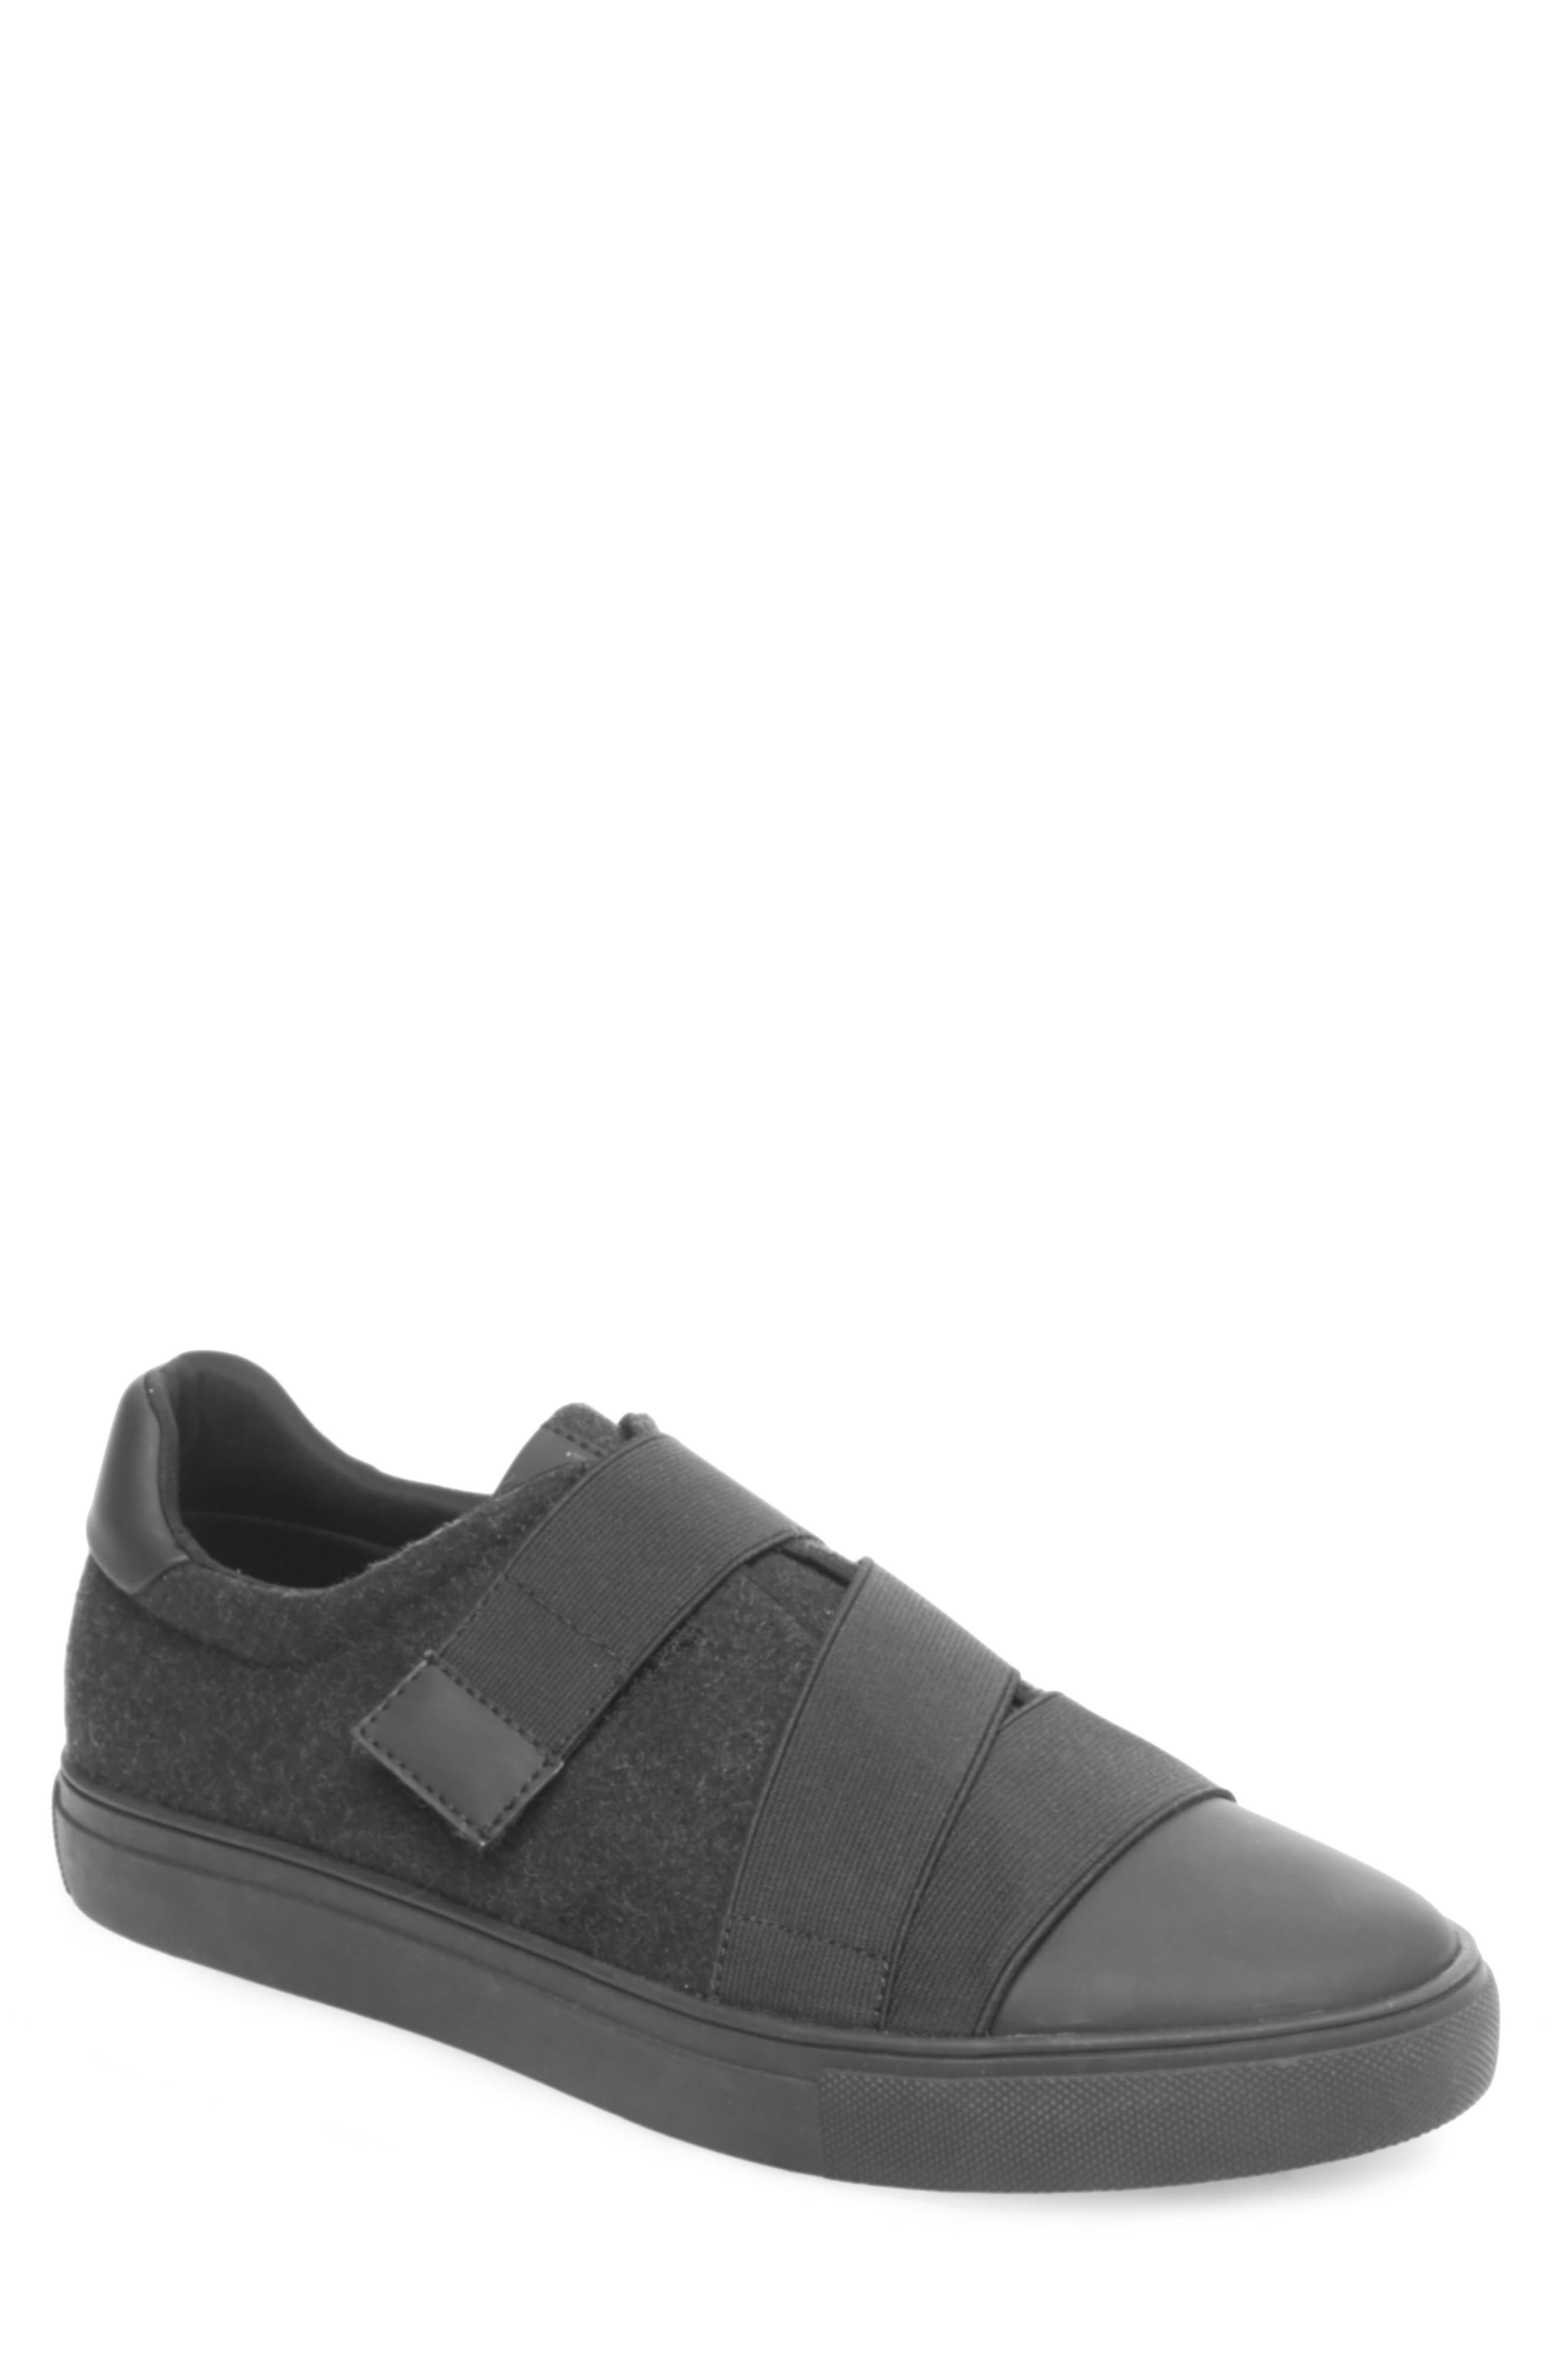 Westy Sneaker,                             Main thumbnail 1, color,                             002